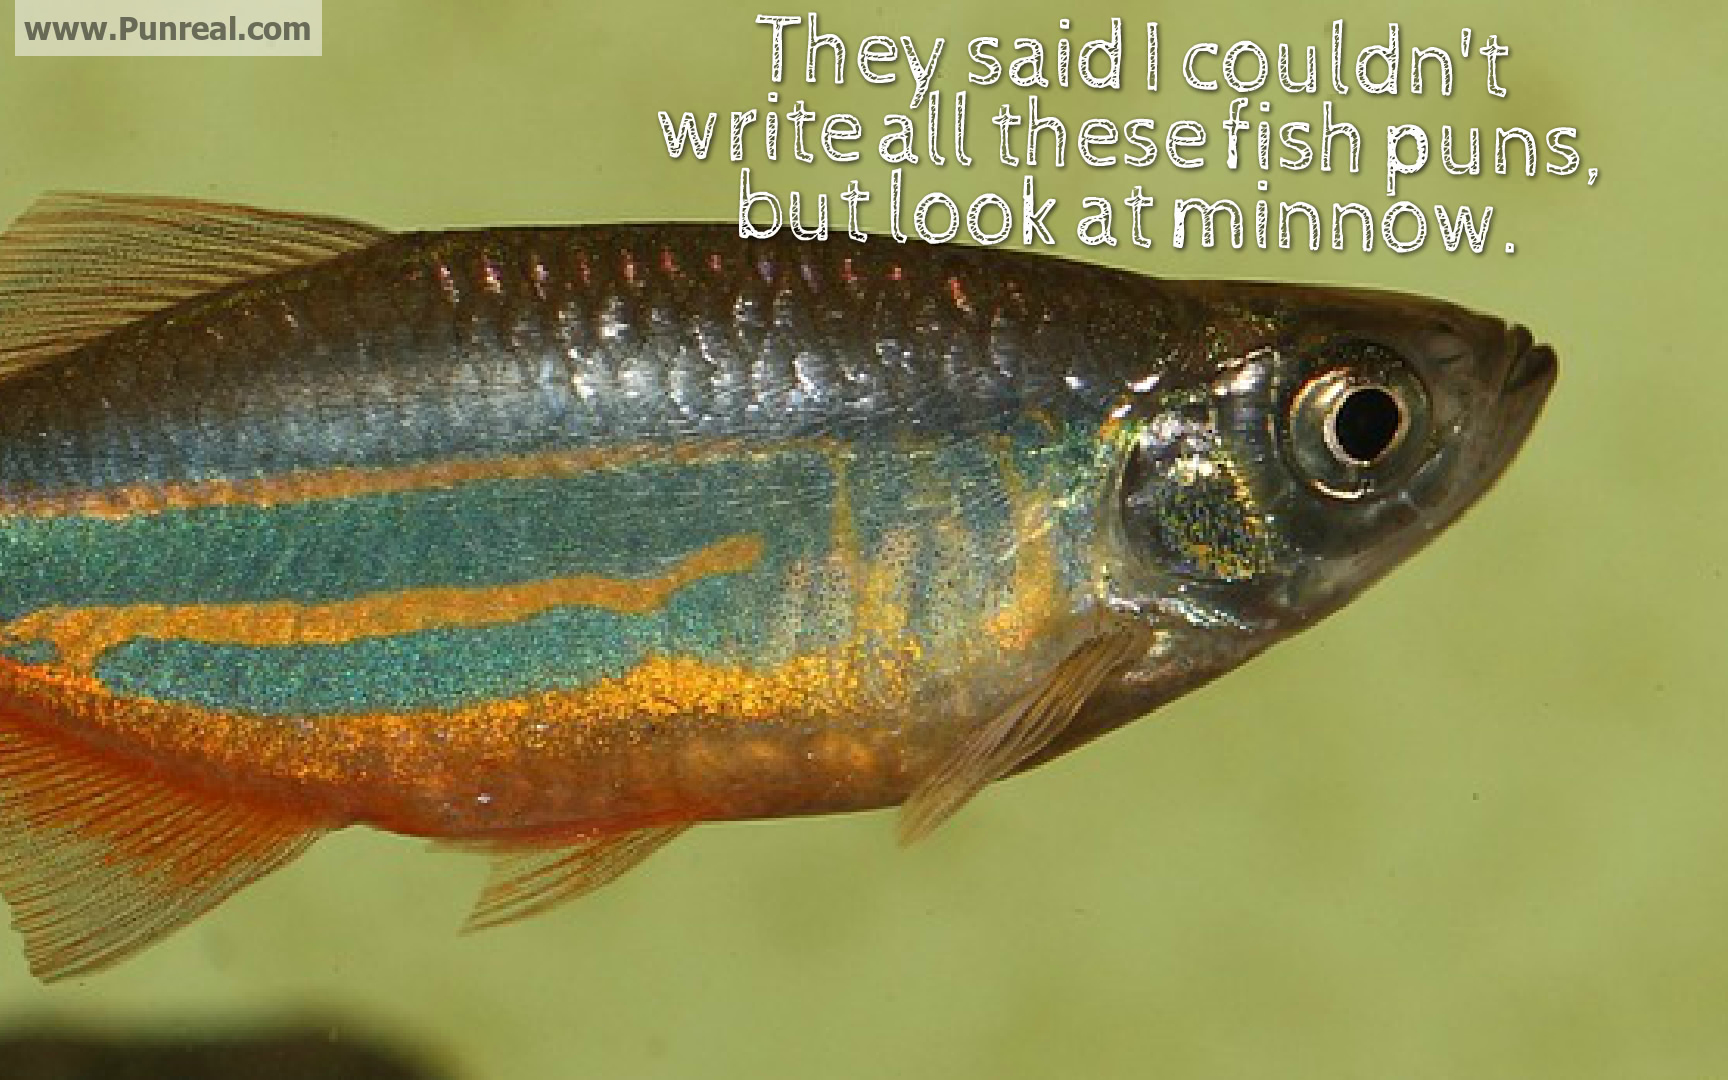 They said I couldn't write all these fish puns, but look at minnow.